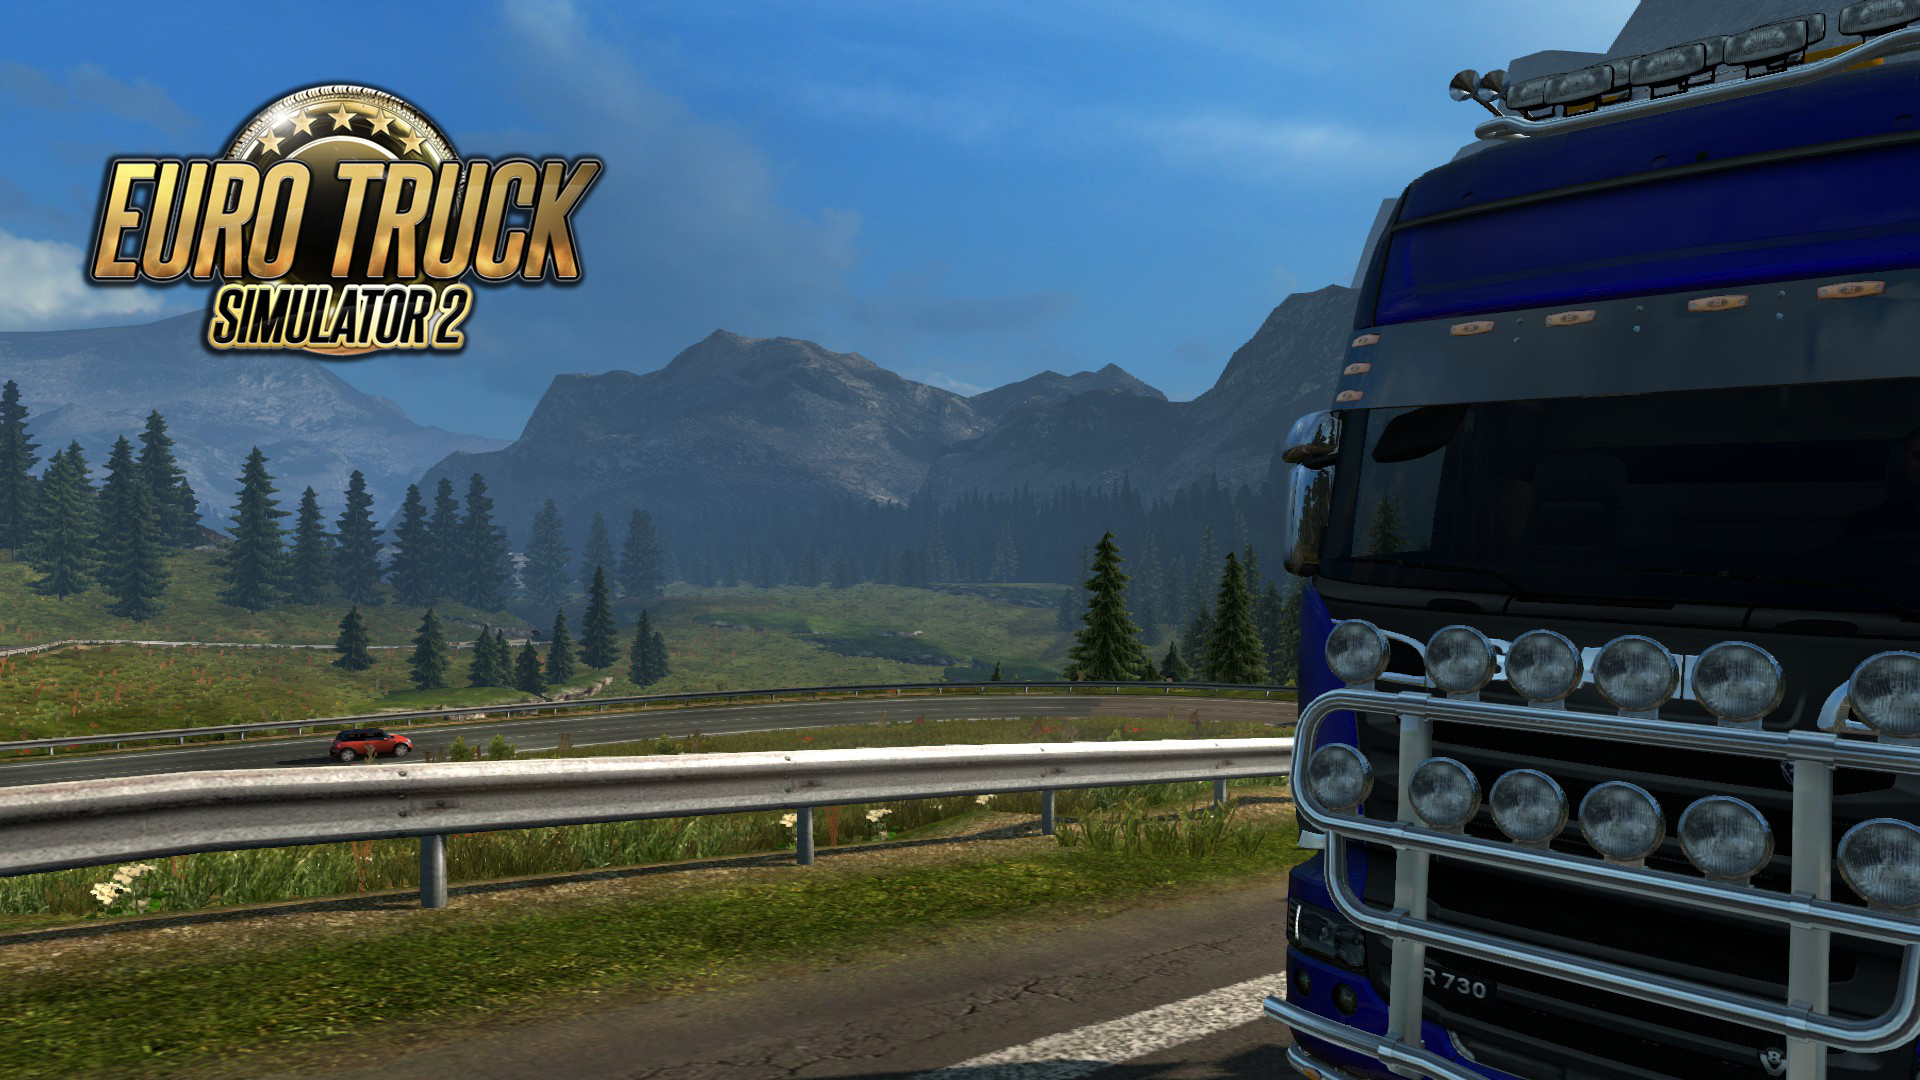 Euro Truck Simulator 2: 1.20 beta shows ridiculous attention to detail